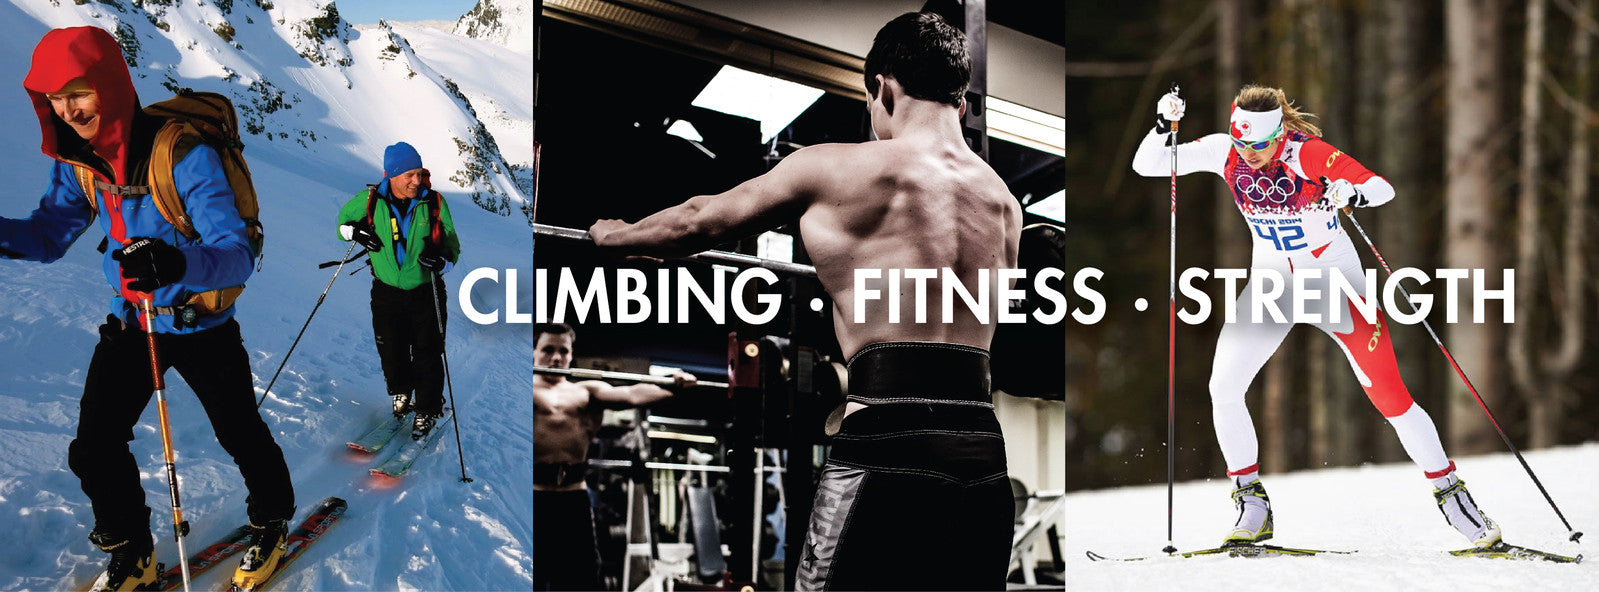 The Core Whistler Gym climbing fitness biking